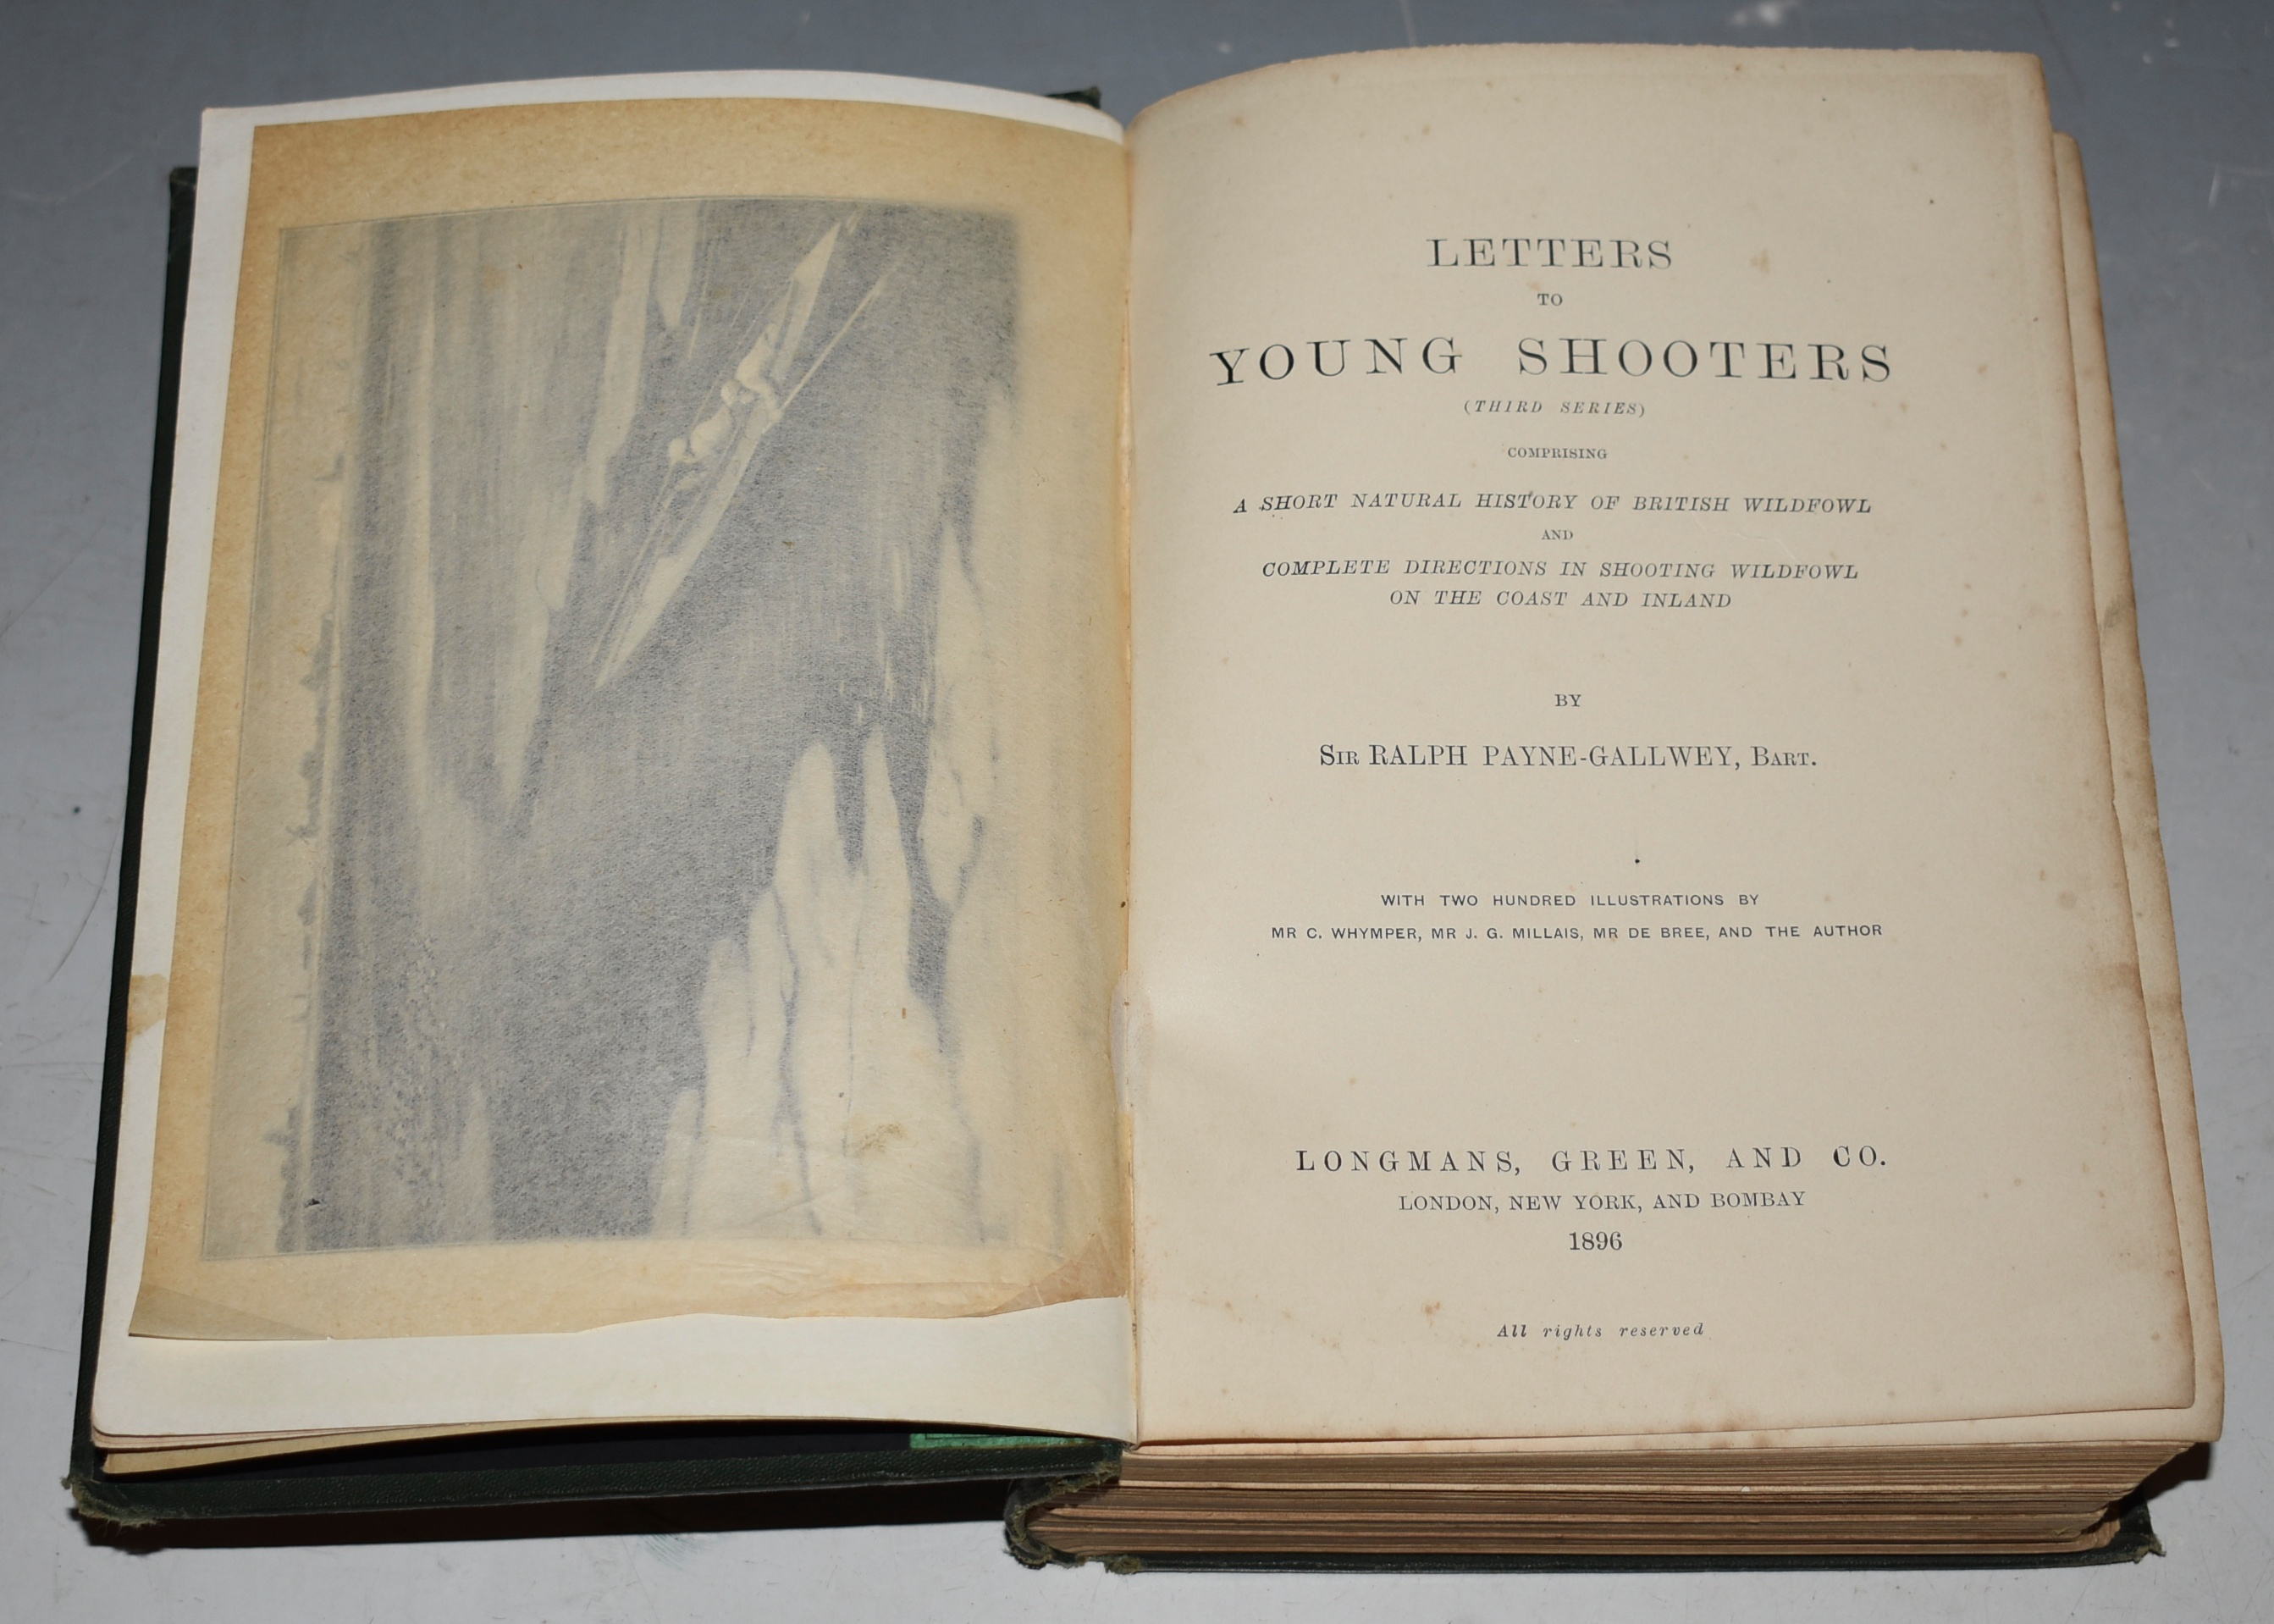 Image for Letters to young Shooters (Third Series) Comprising a short natural history of British Wildfowl and complete directions in shooting wildfowl on the coast and inland. With two hundred illustrations by Mr C. Whymper, Millais, Bree and the Author.